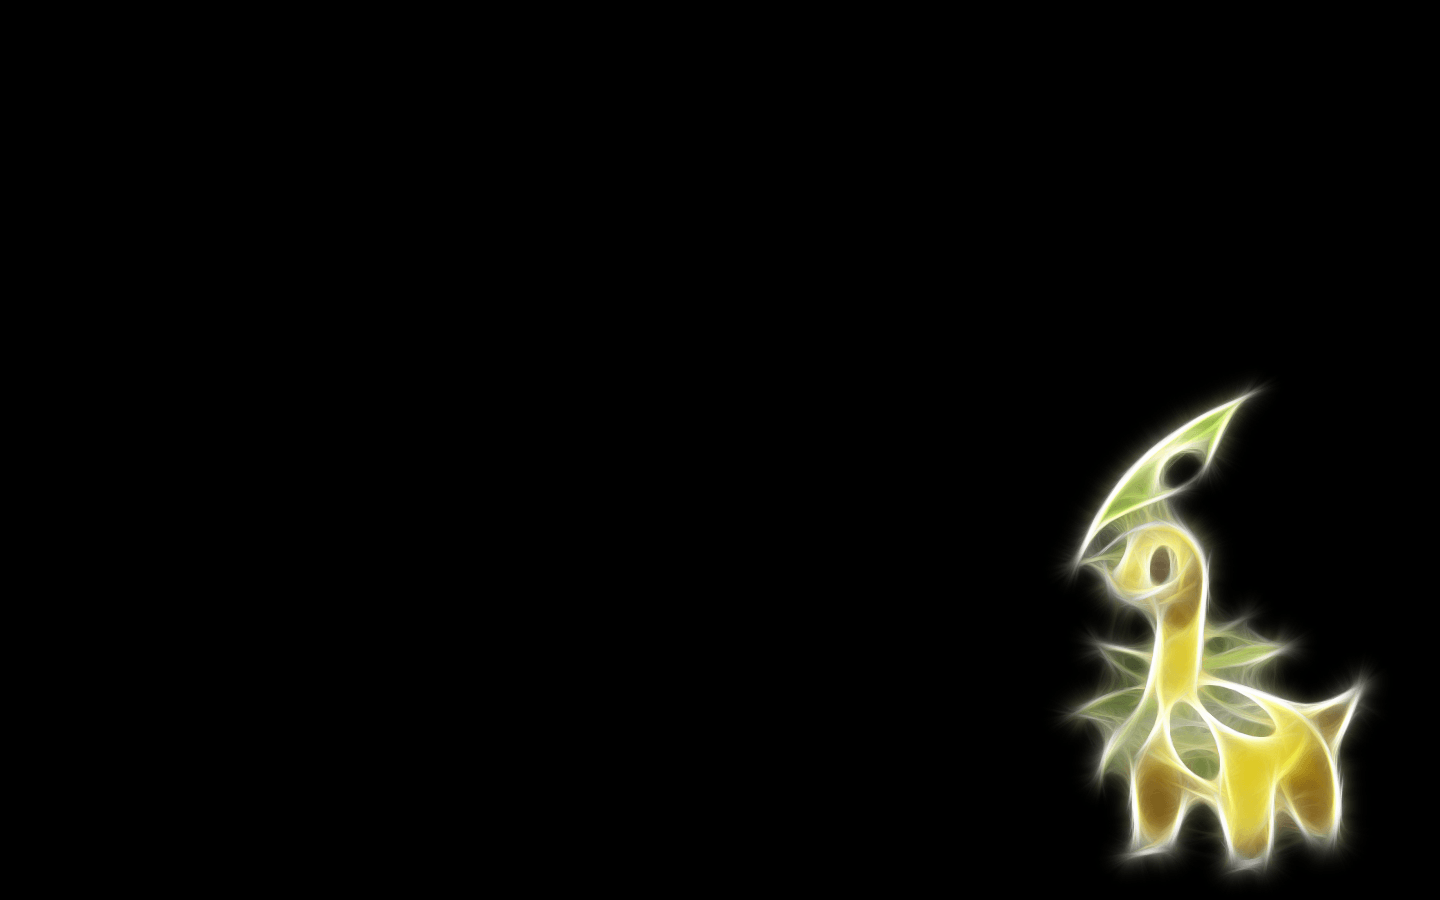 Bayleef Pokemon Wallpaper #208573 HD Wallpaper Res: 1440x900 ...